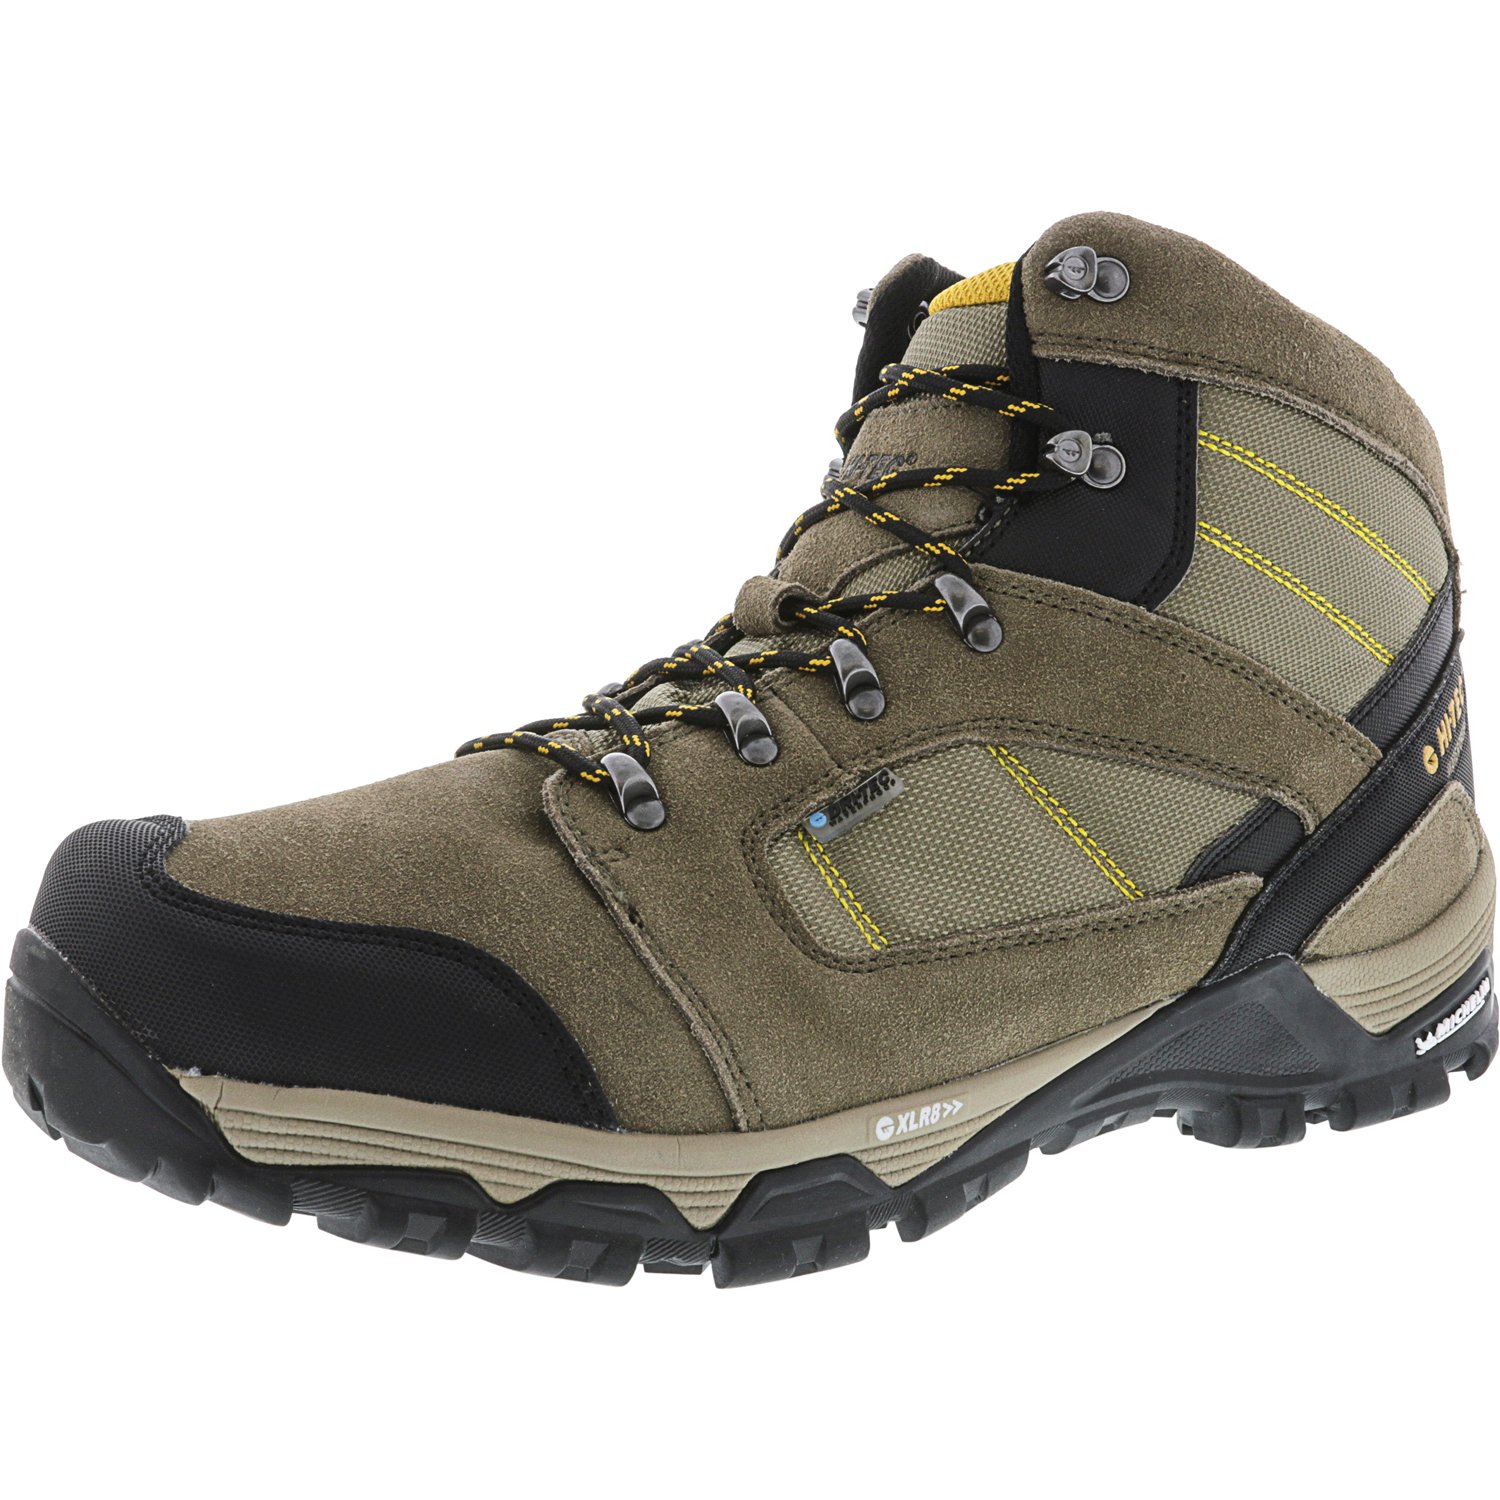 Hi-Tec Men's Borah Peak Ultra Waterproof Dark Taupe   Light Core Gold High-Top Hiking Boot 14M by Hi-Tec